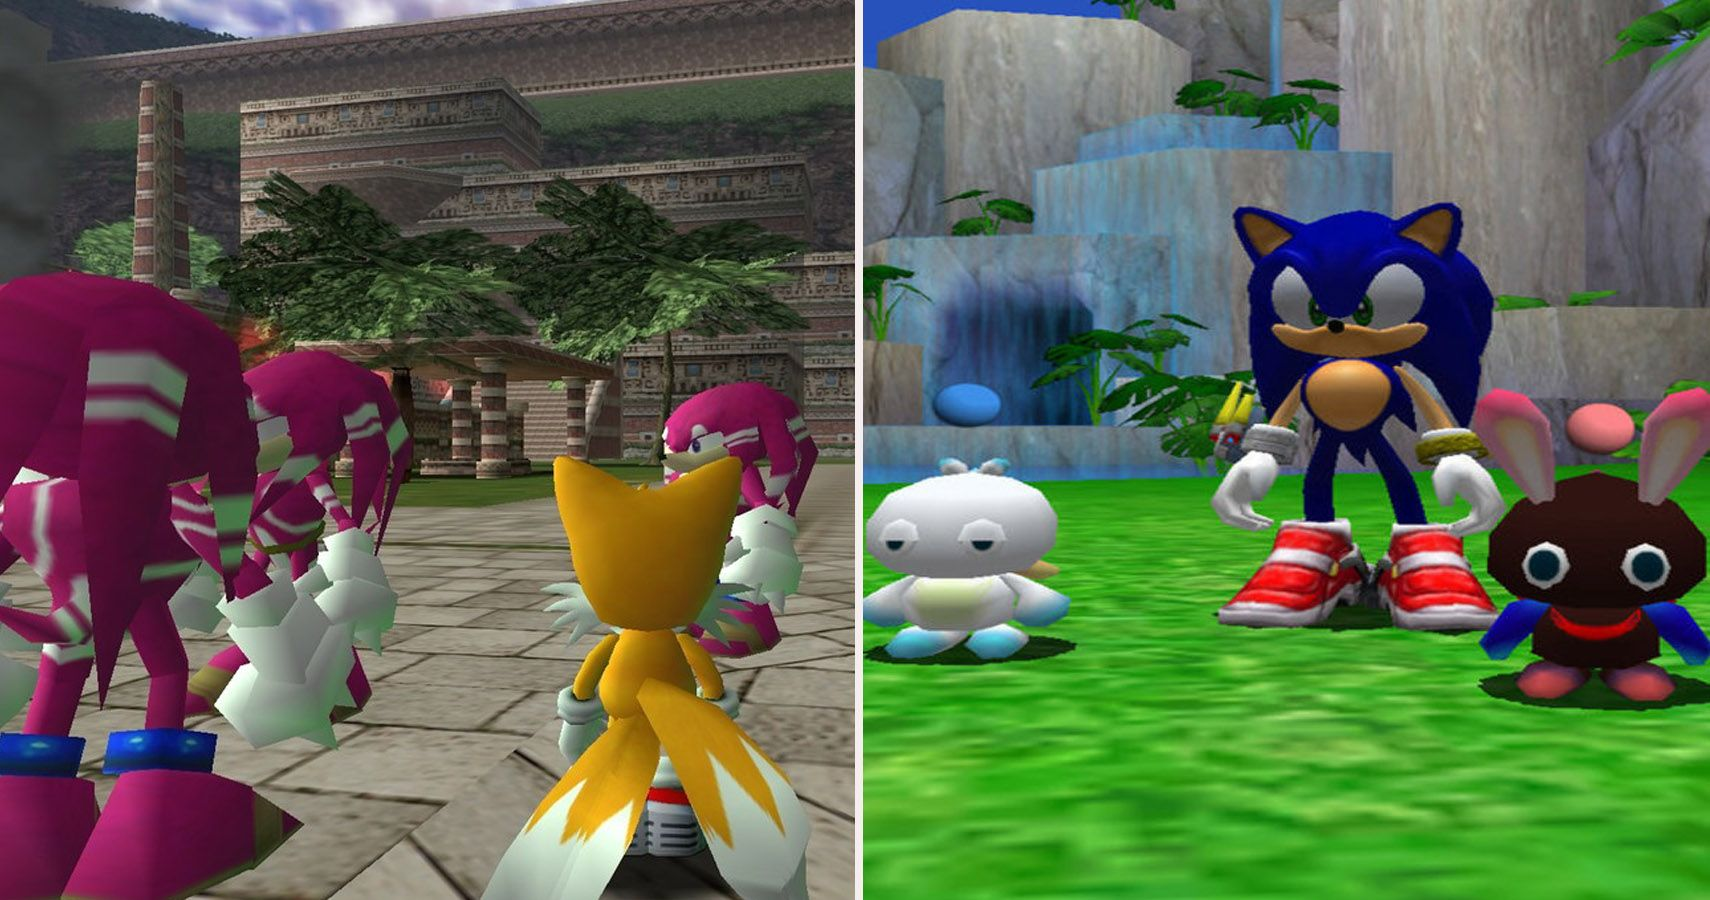 Sonic Adventure: 5 Reasons Why The First Game Is Better (& 5 Why The Sequel Is Superior)